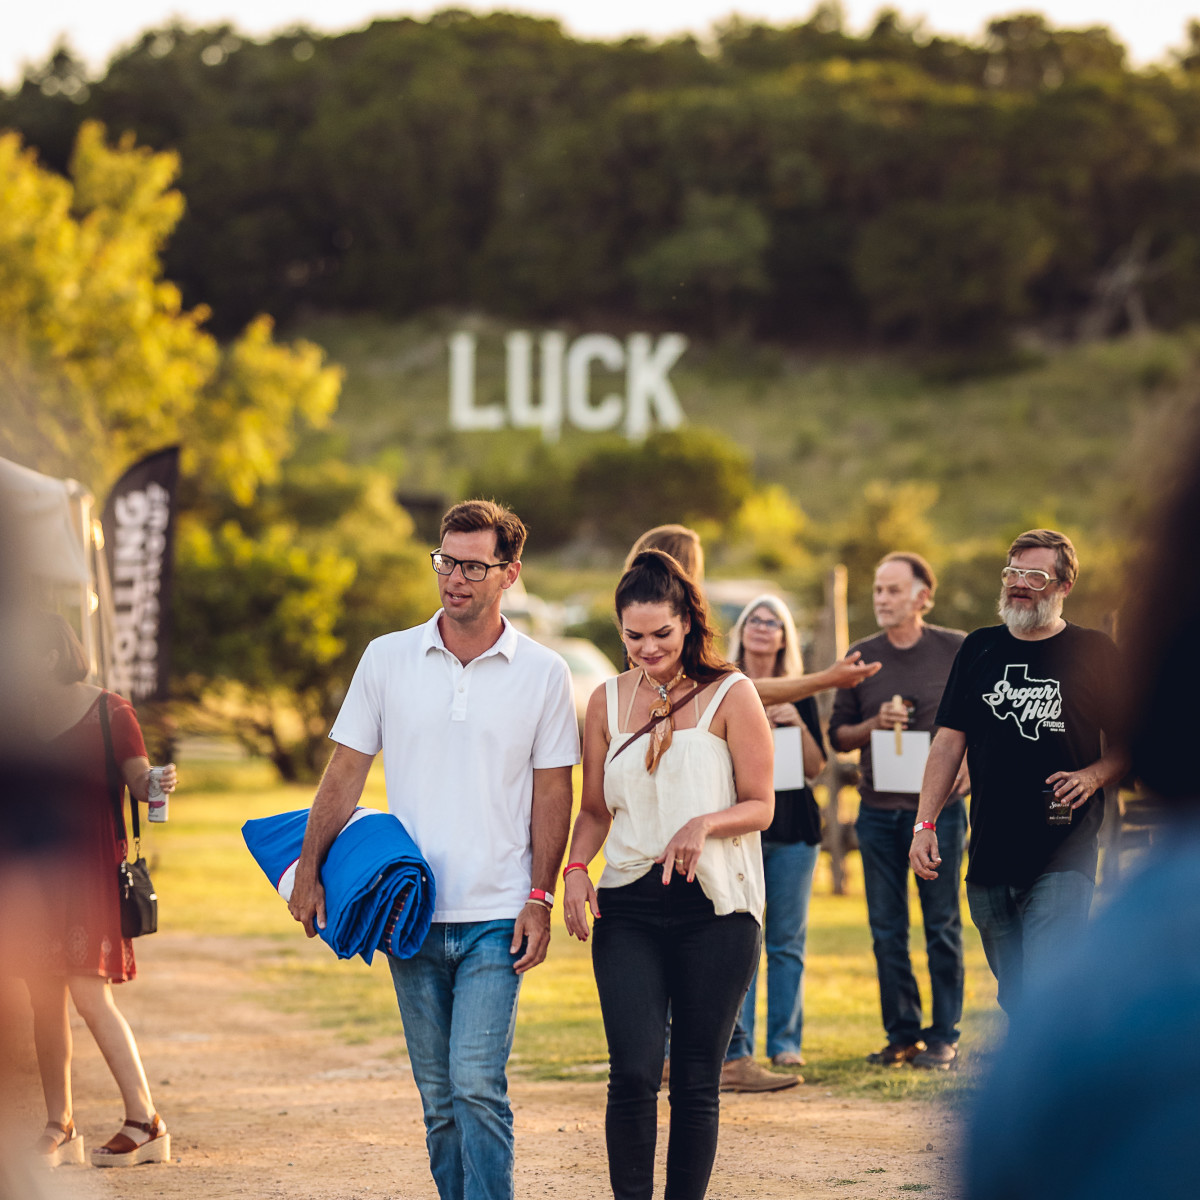 Luck Cinema sign and couple